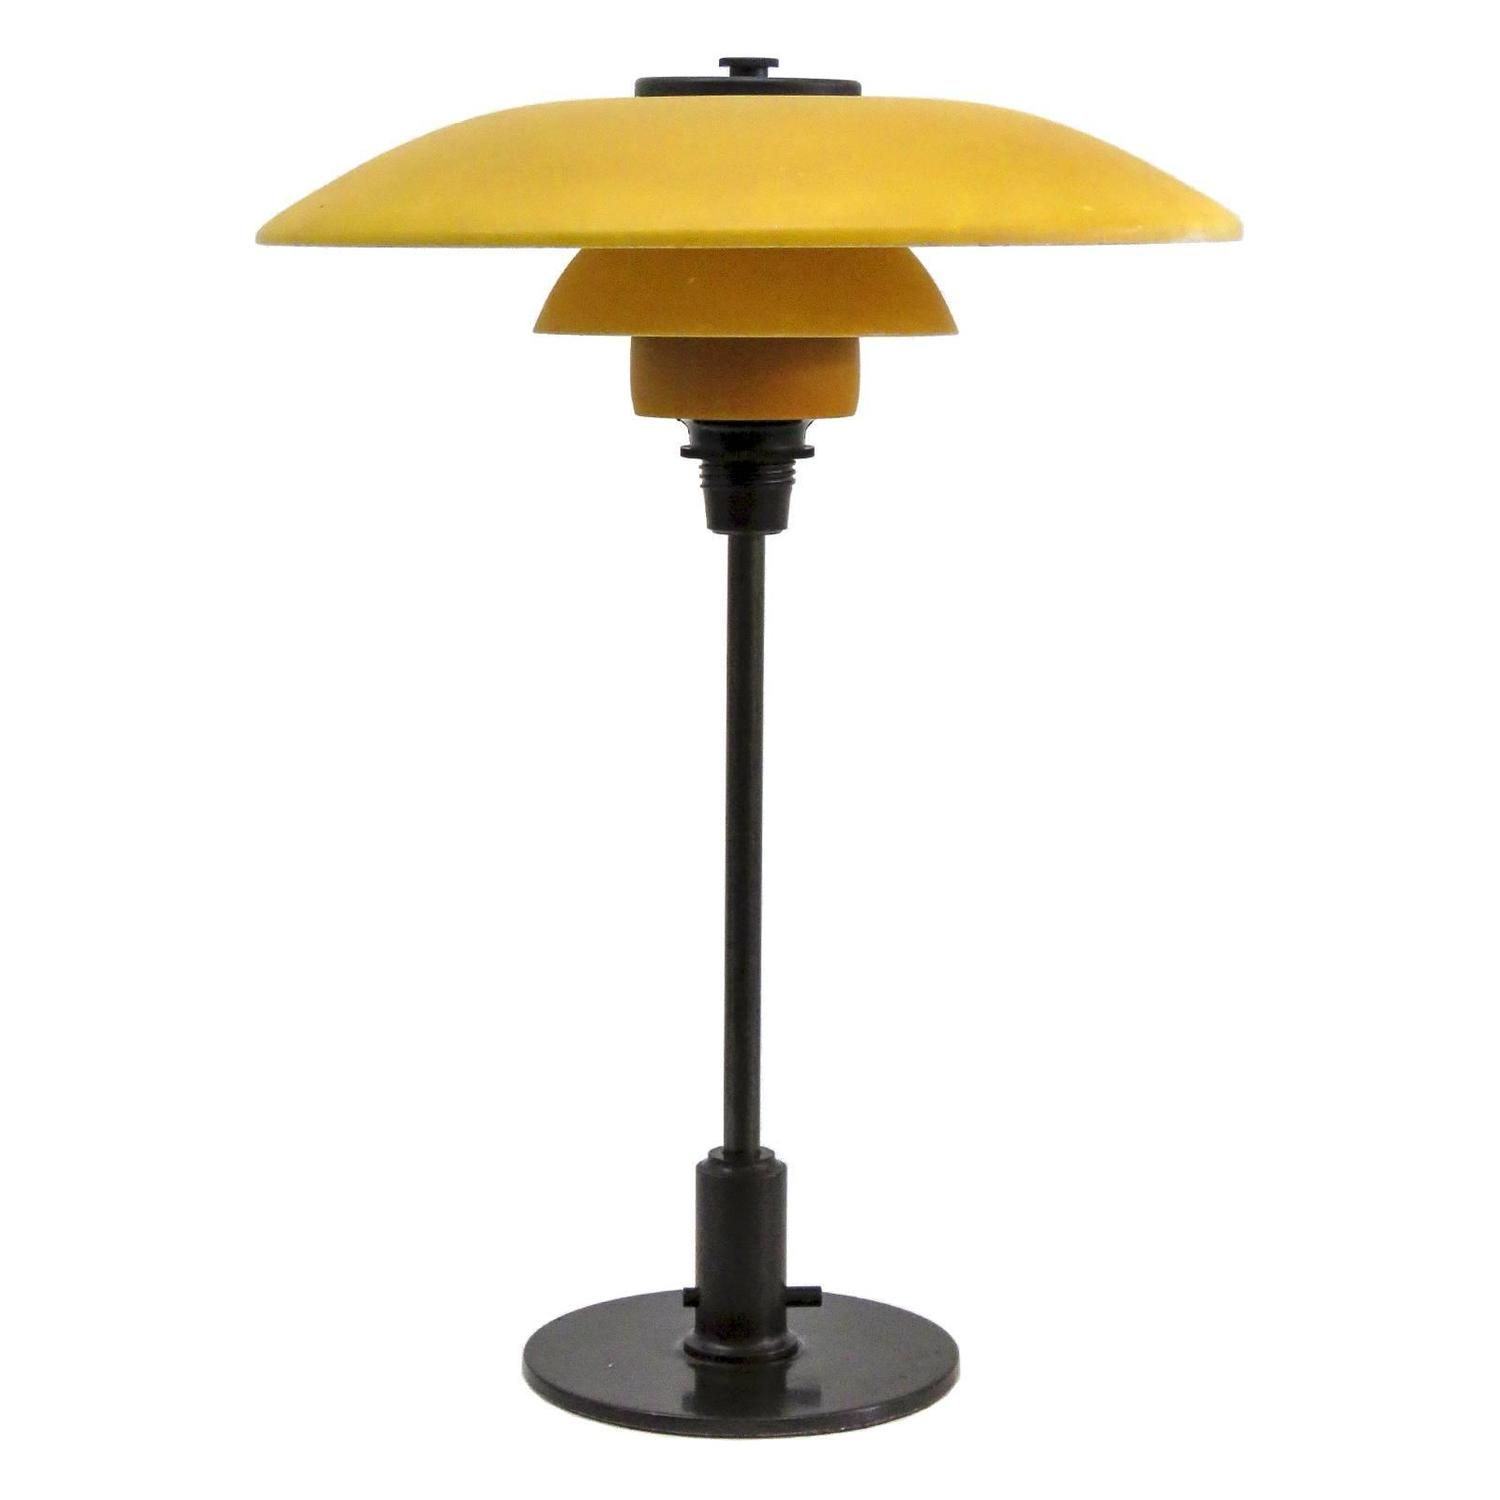 Rare Poul Henningsen PH 3½-2 Table Lamp, 1930 | From a unique collection of antique and modern table lamps at…